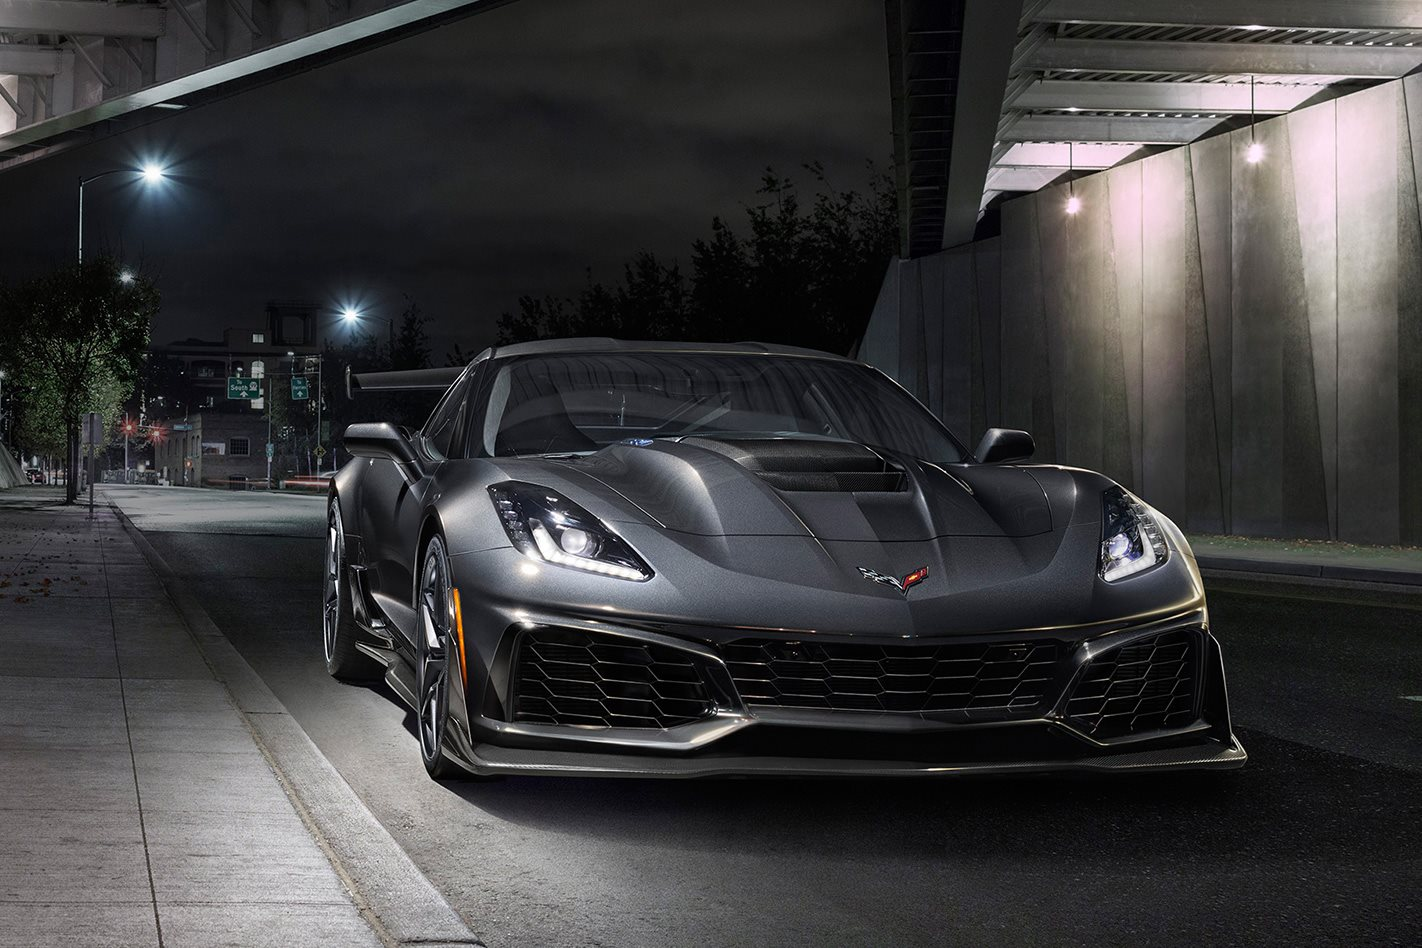 2019 Chevrolet Corvette ZR1 front